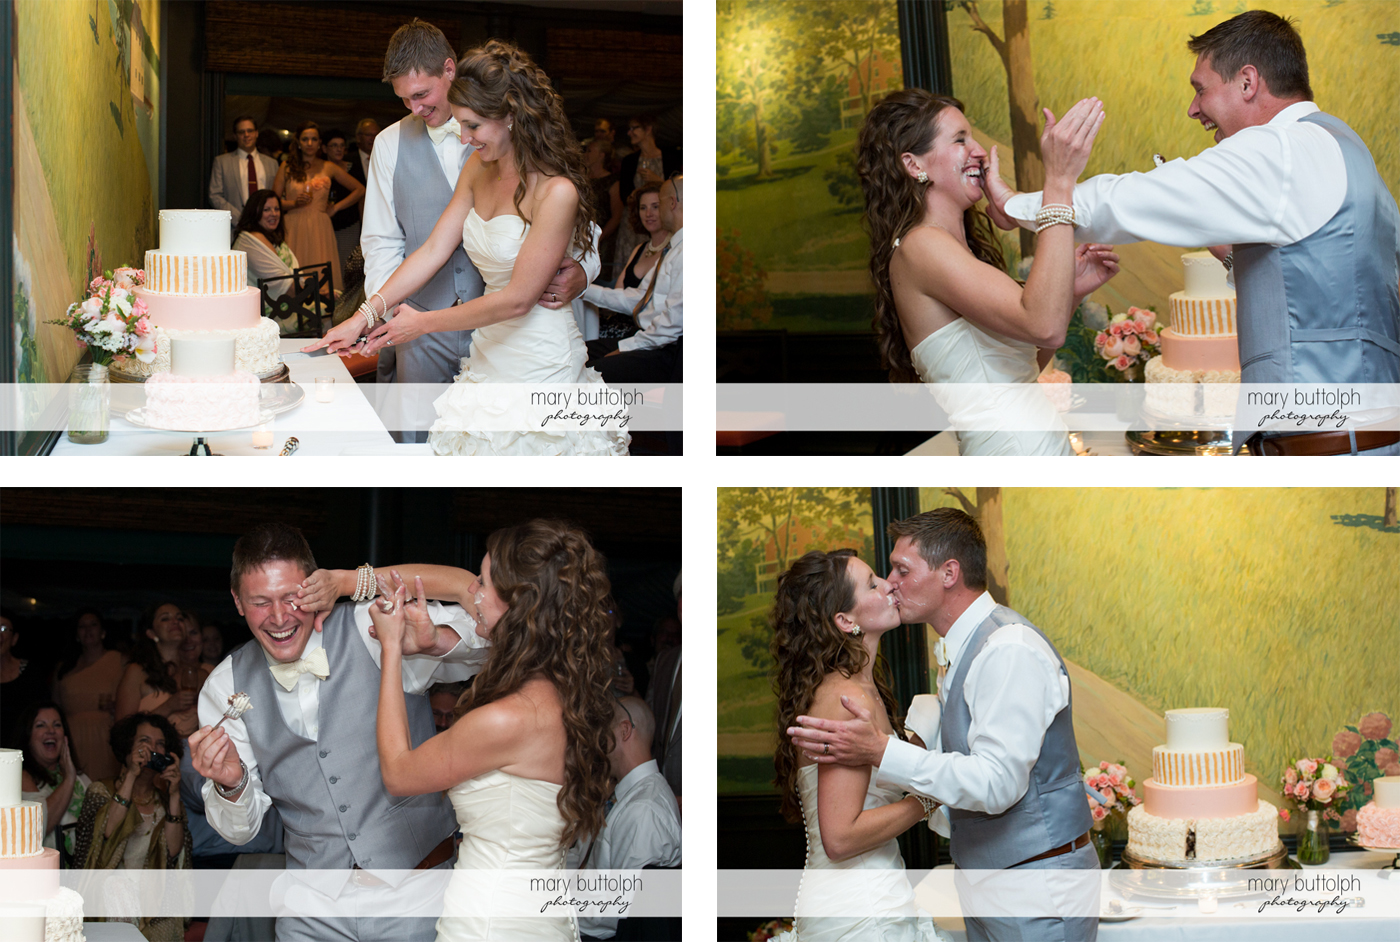 Couple clown around while cutting the cake before kissing at the Inns of Aurora Wedding